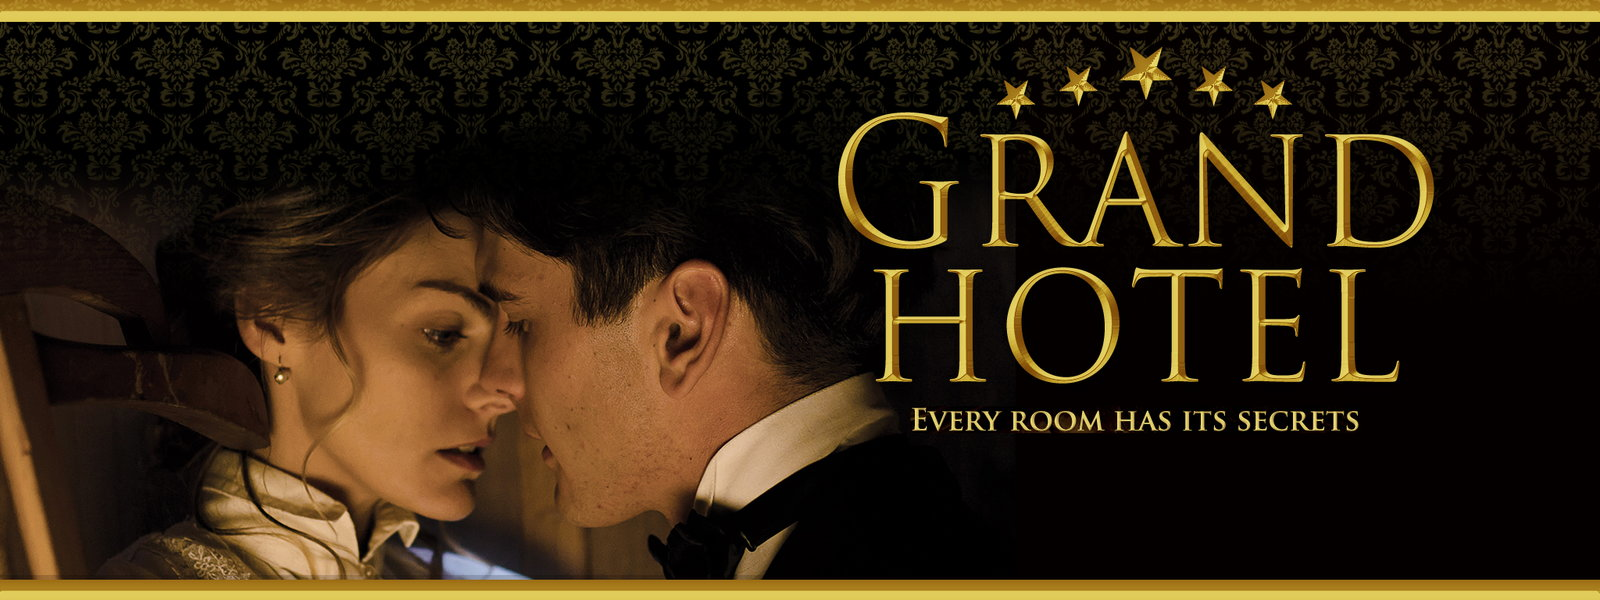 Grand Hotel watching online on Ten Tv